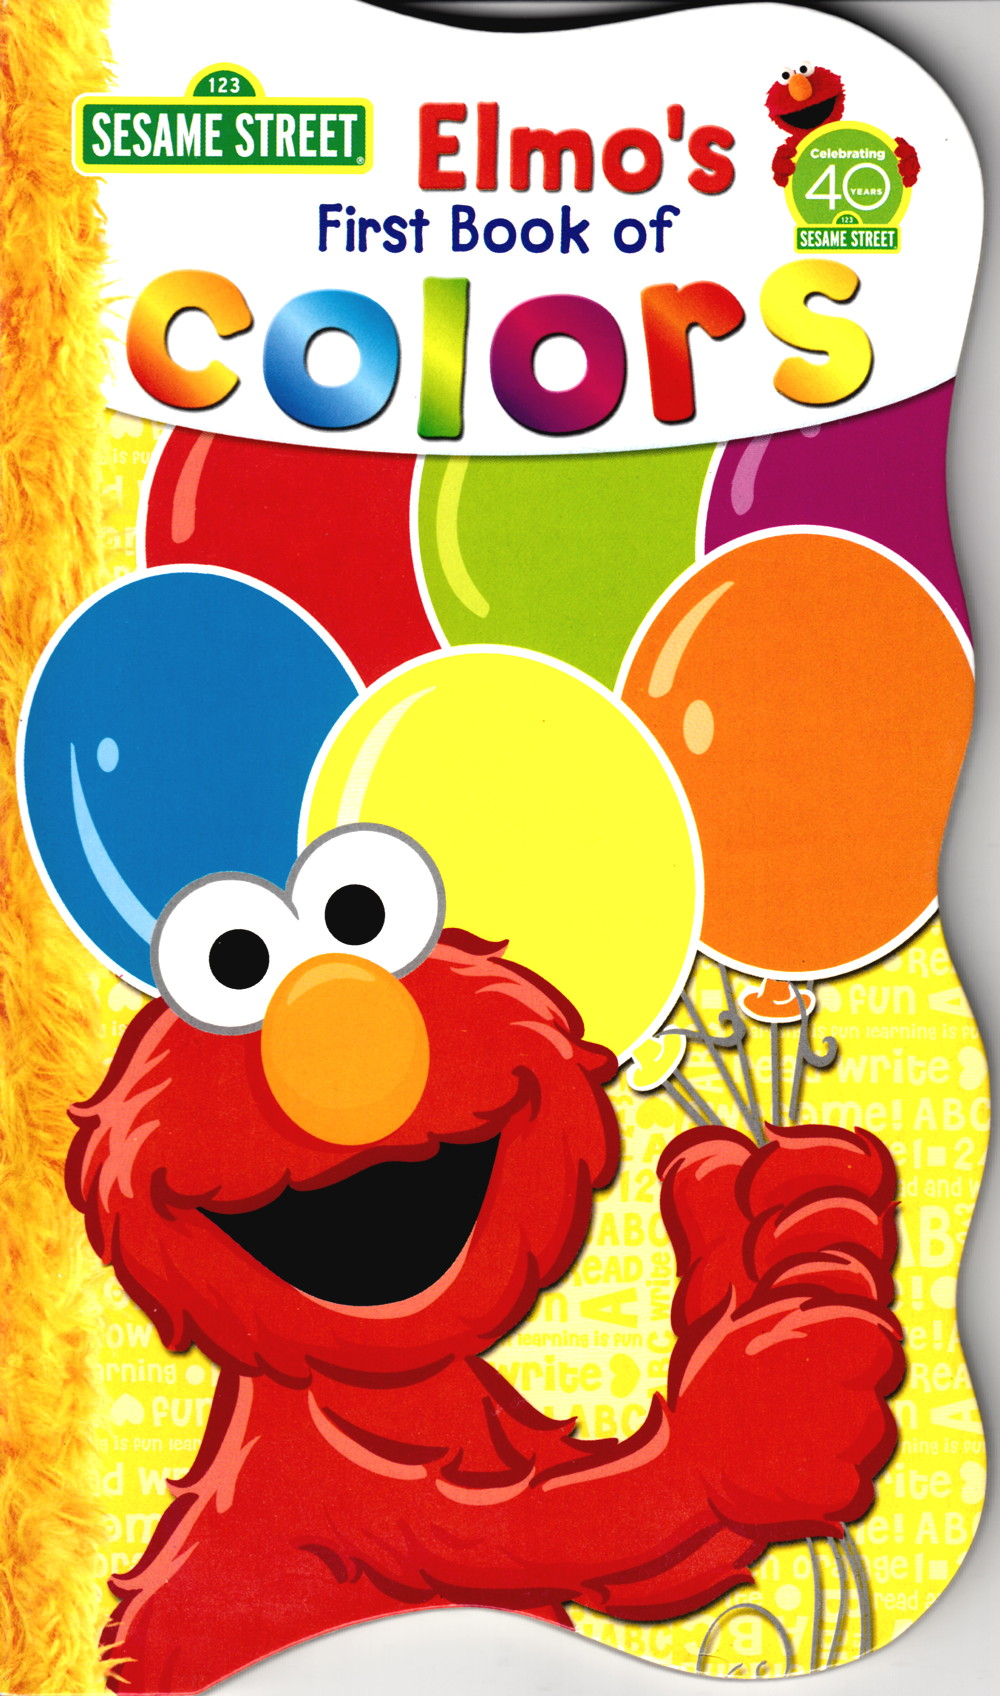 Elmo\'s First Book of Colors | Muppet Wiki | FANDOM powered by Wikia